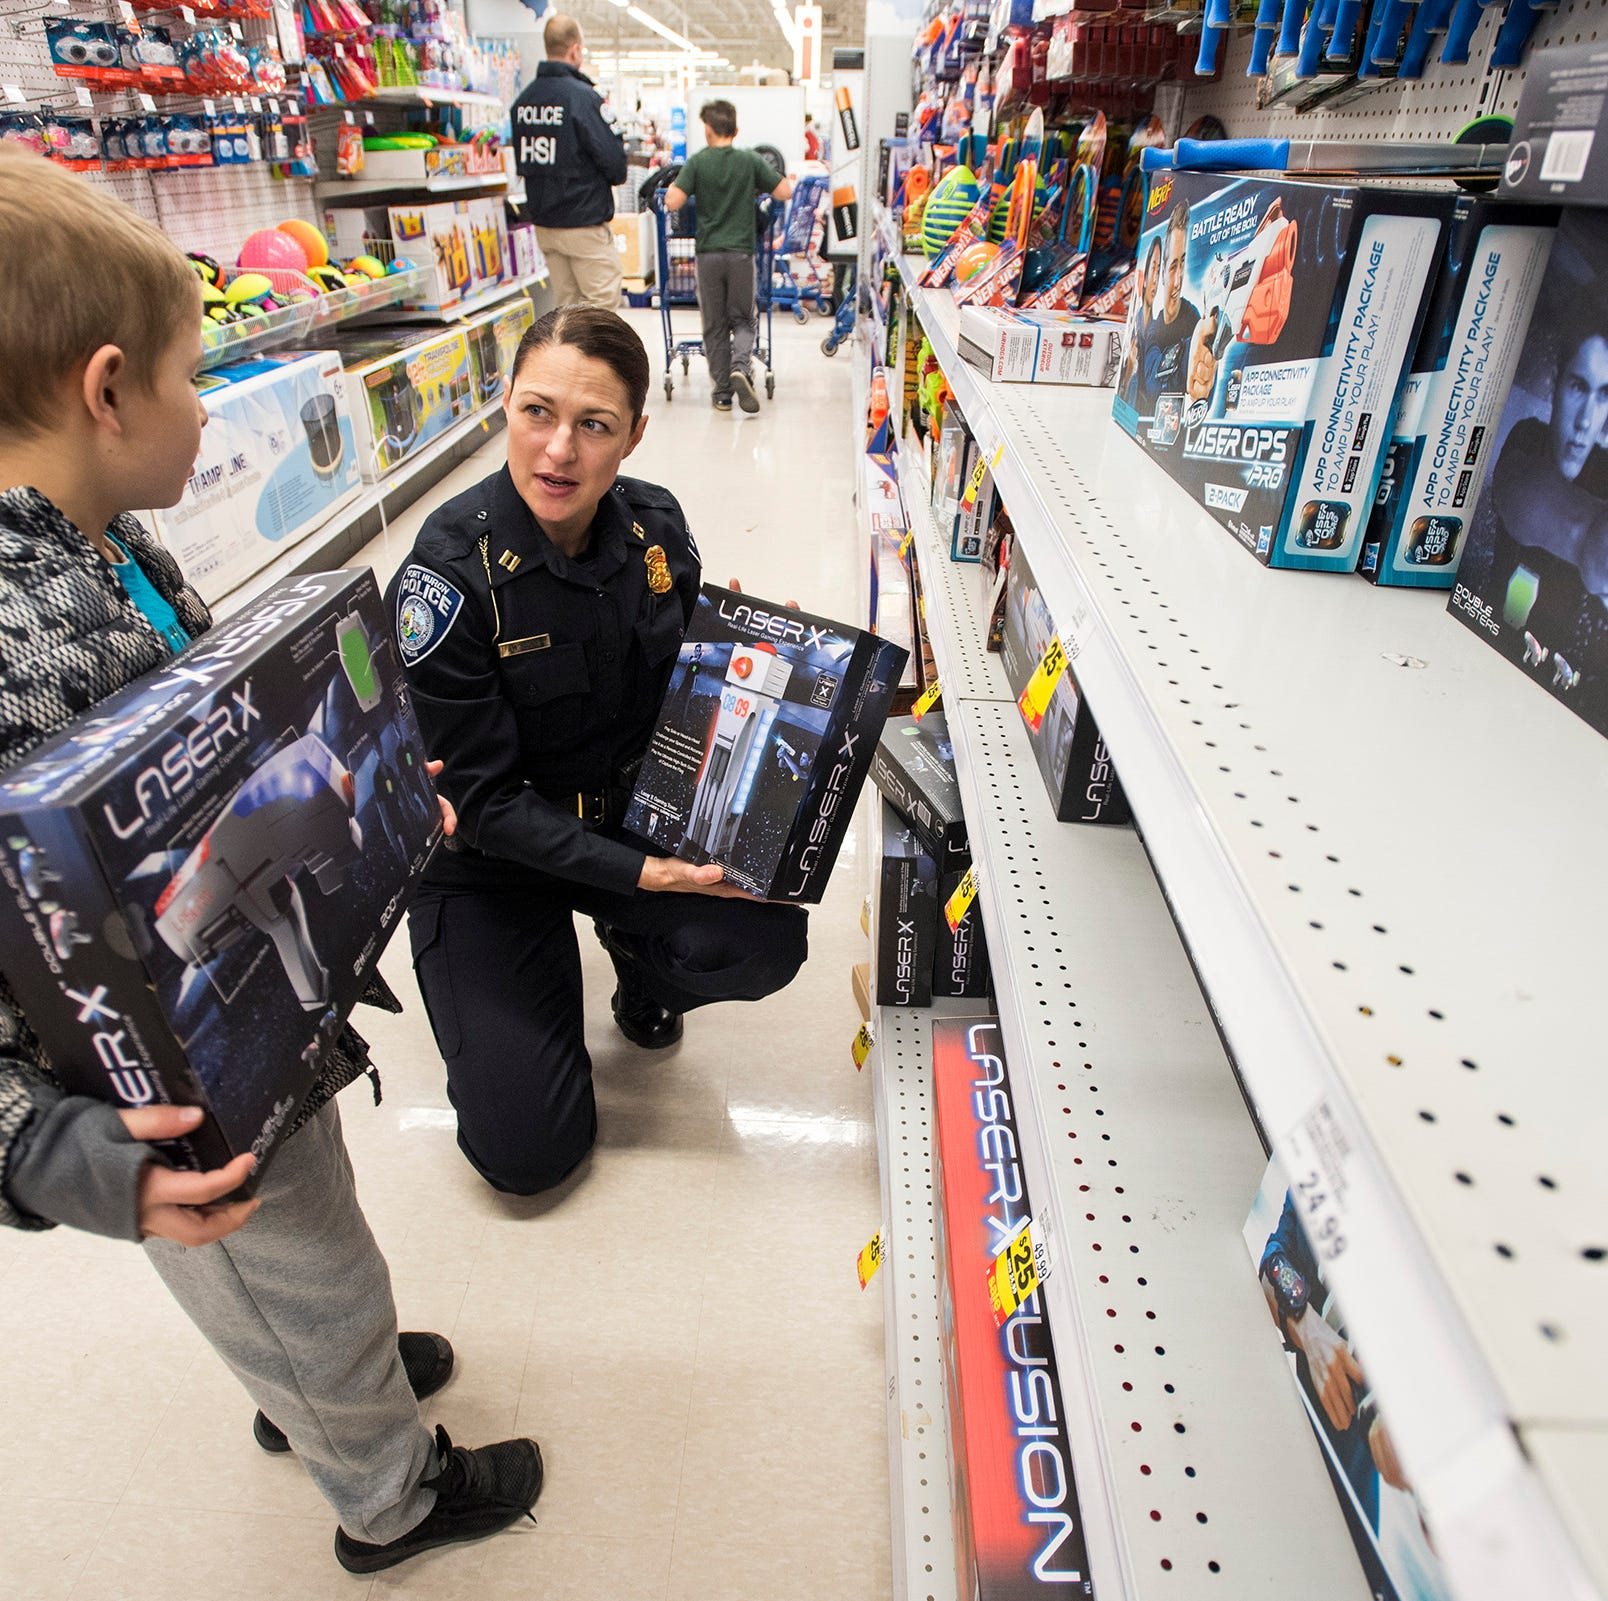 Cops bring Christmas to nearly 100 kids